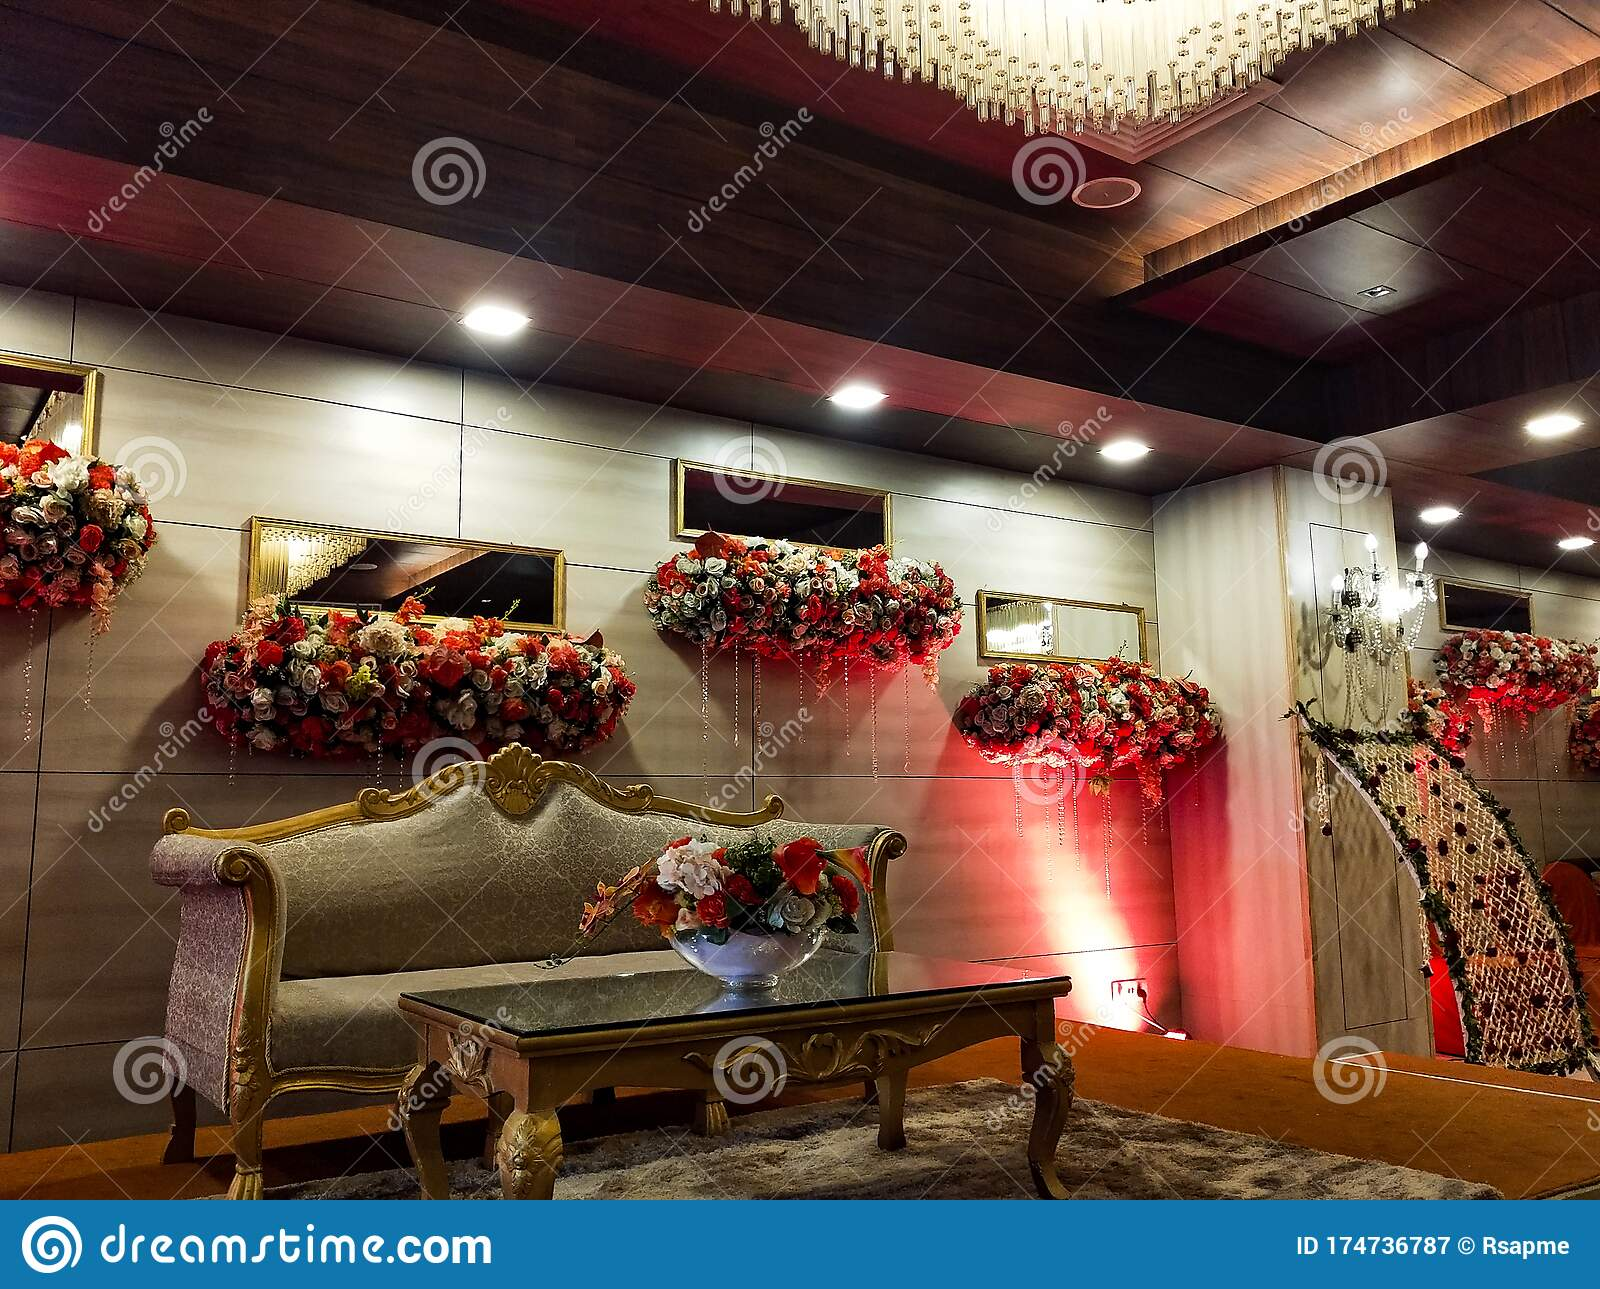 Flowers Decoration Inside Indian Wedding Banquet Hall During Evening Time In Delhi India Stock Image Image Of Time Evening 174736787